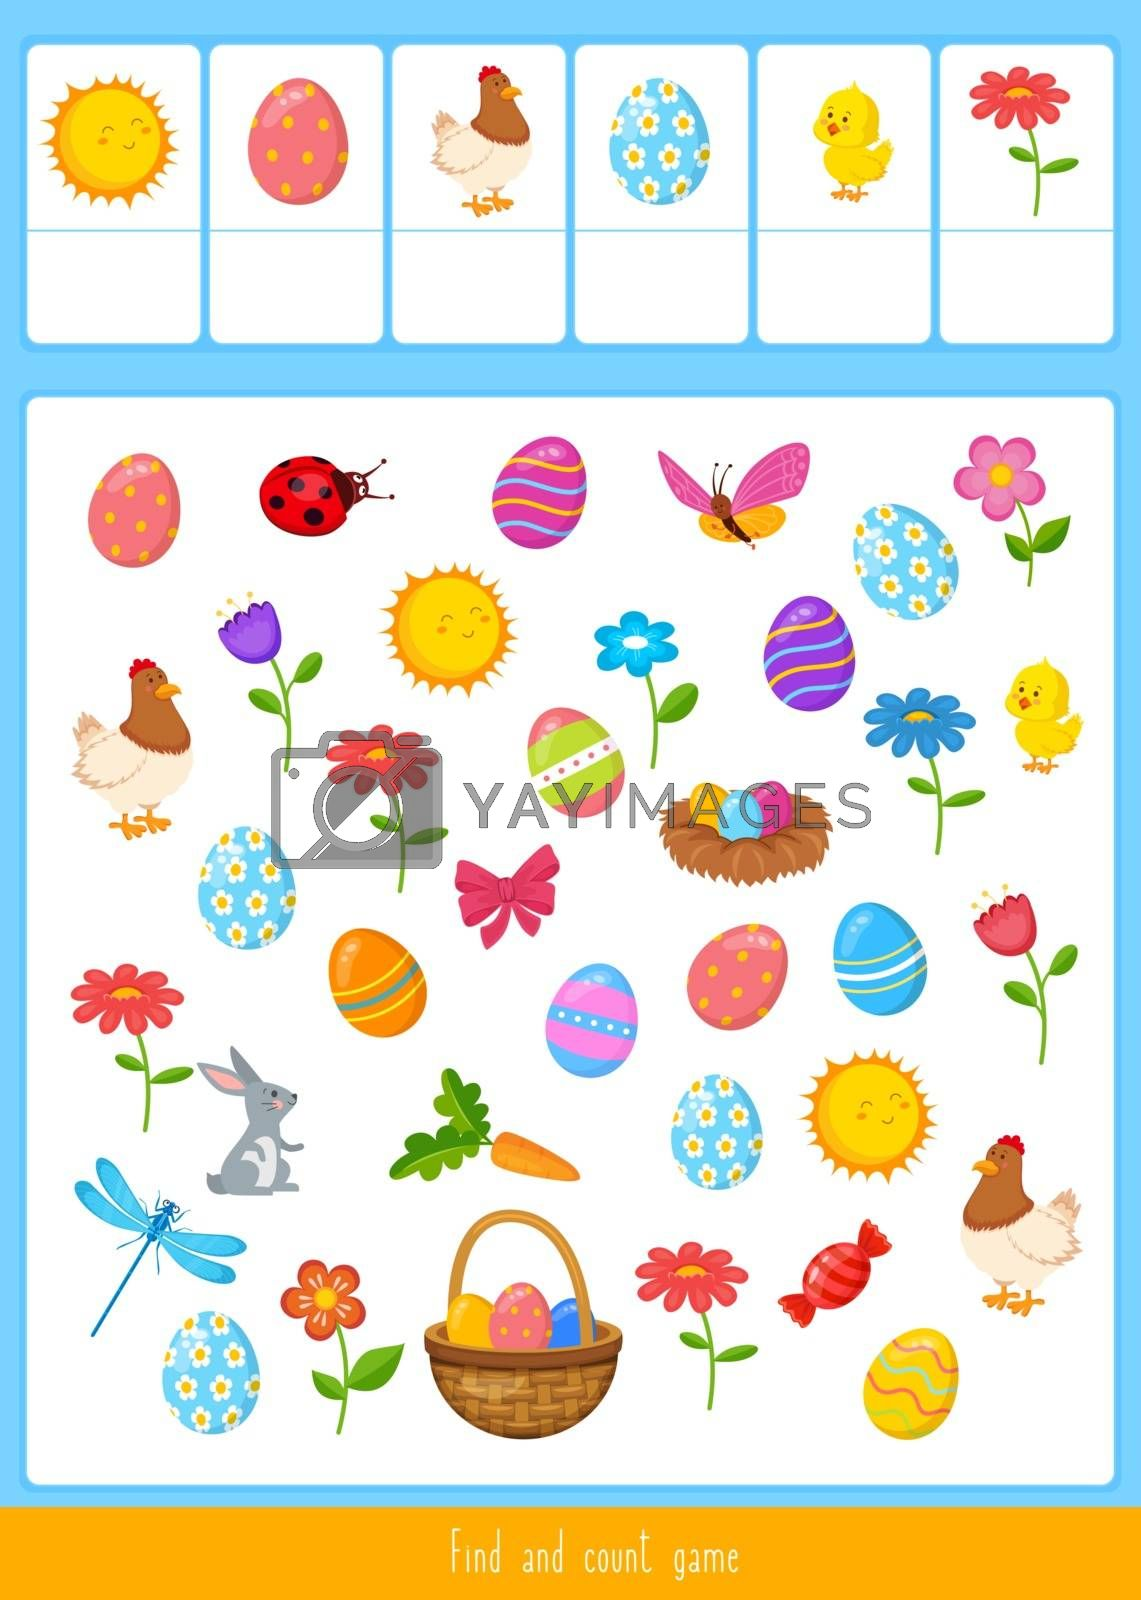 Educational children game, vector illustration.  Easter found and count.